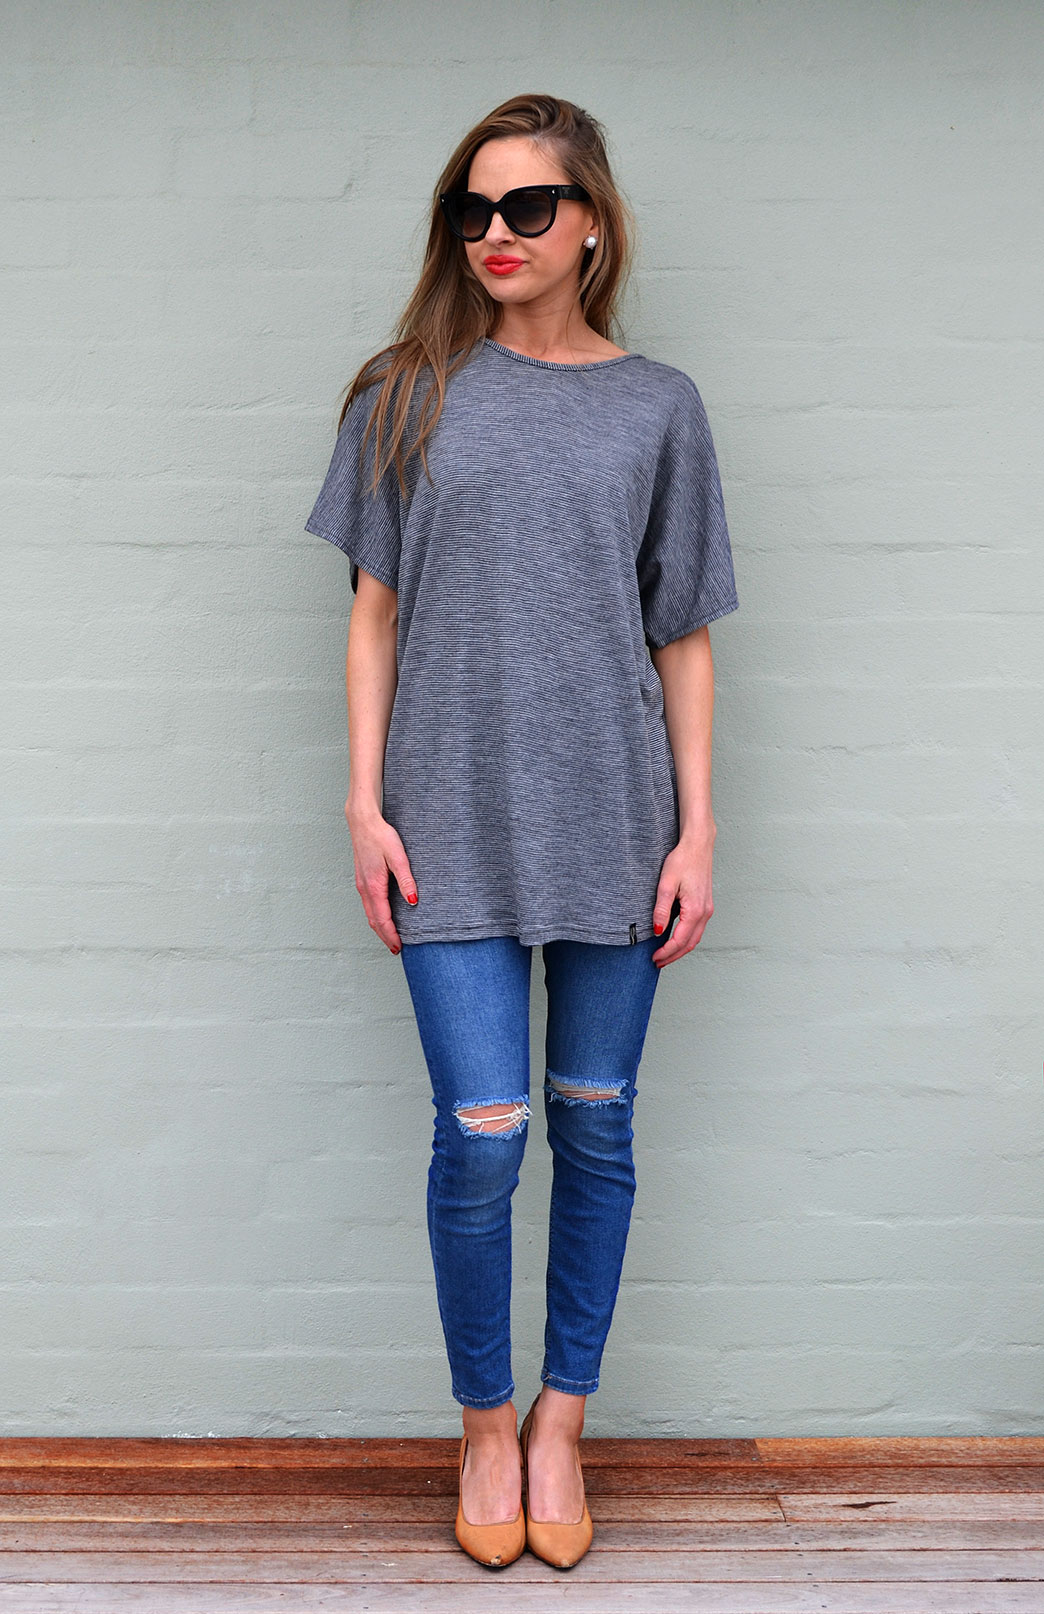 Loose T-Shirt - Women's Loose Wool Light Grey Pinstripe Summer Top - Smitten Merino Tasmania Australia